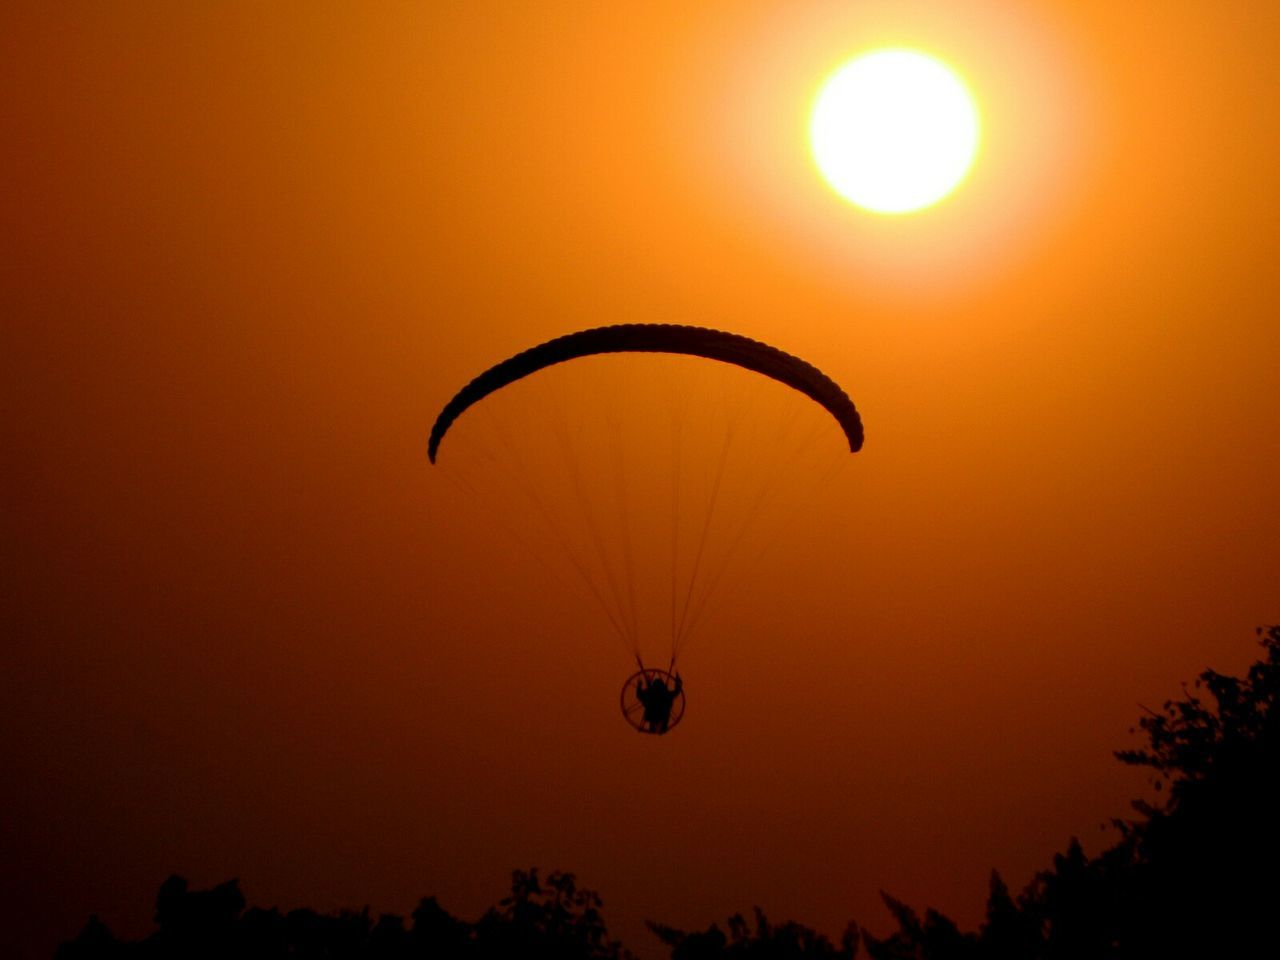 Low Angle View Of Silhouette Parachute Flying Against Orange Sky During Sunset